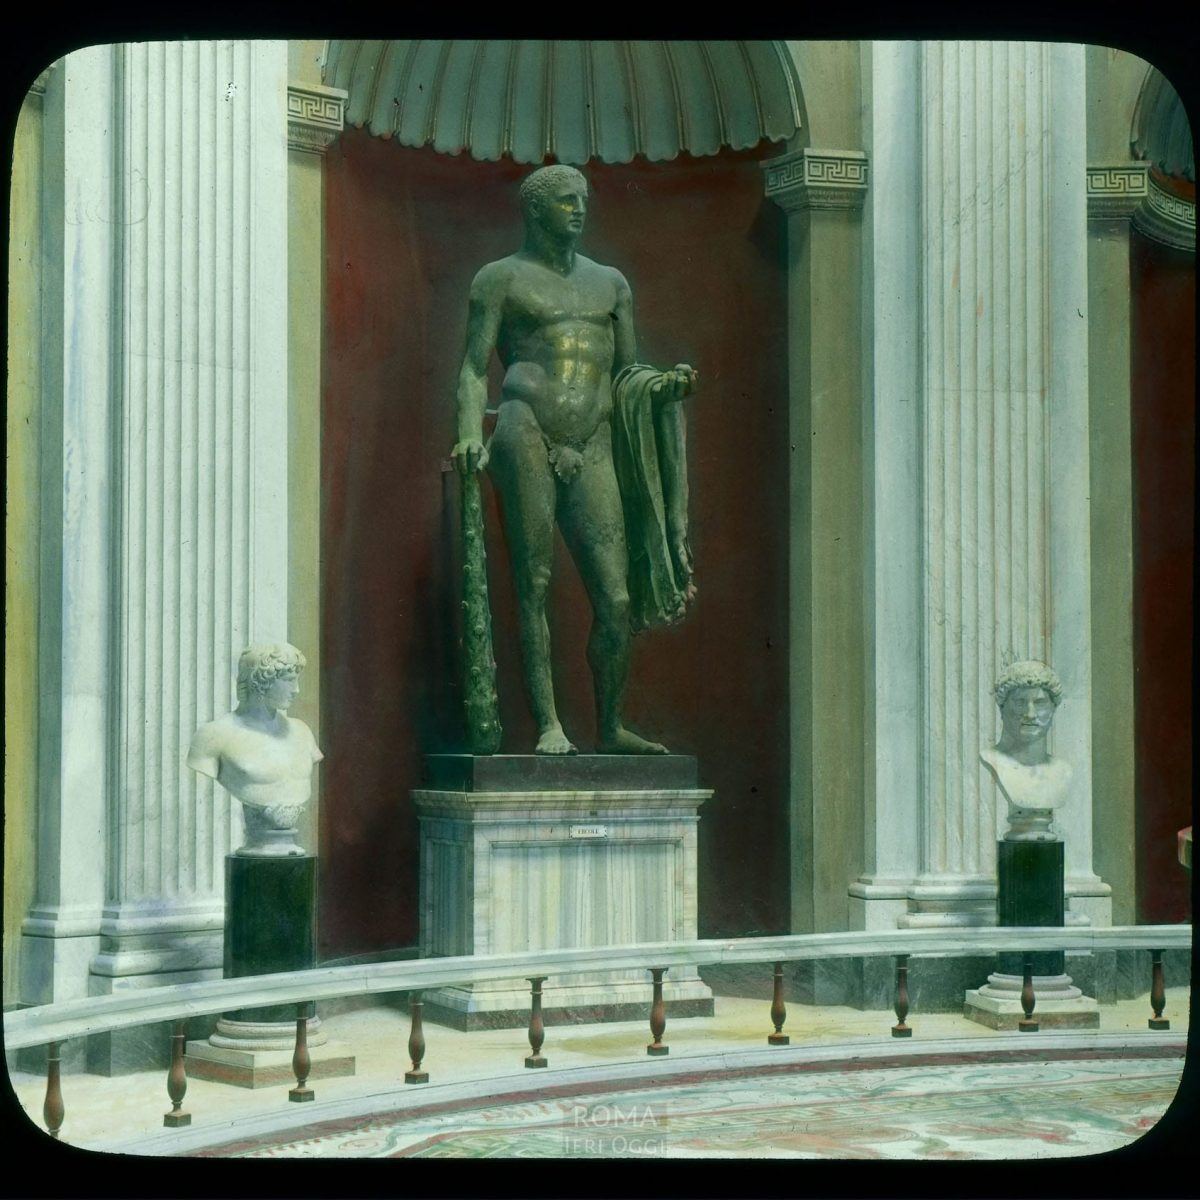 Vatican City. Vatican Museum, Museo Pio-Clementino: Hercules of the Theatre of Pompey, on display with two busts View in tinted lantern slide, ca. 1919-1938. The gilded bronze statue dates from the early 3rd century B.C.E.